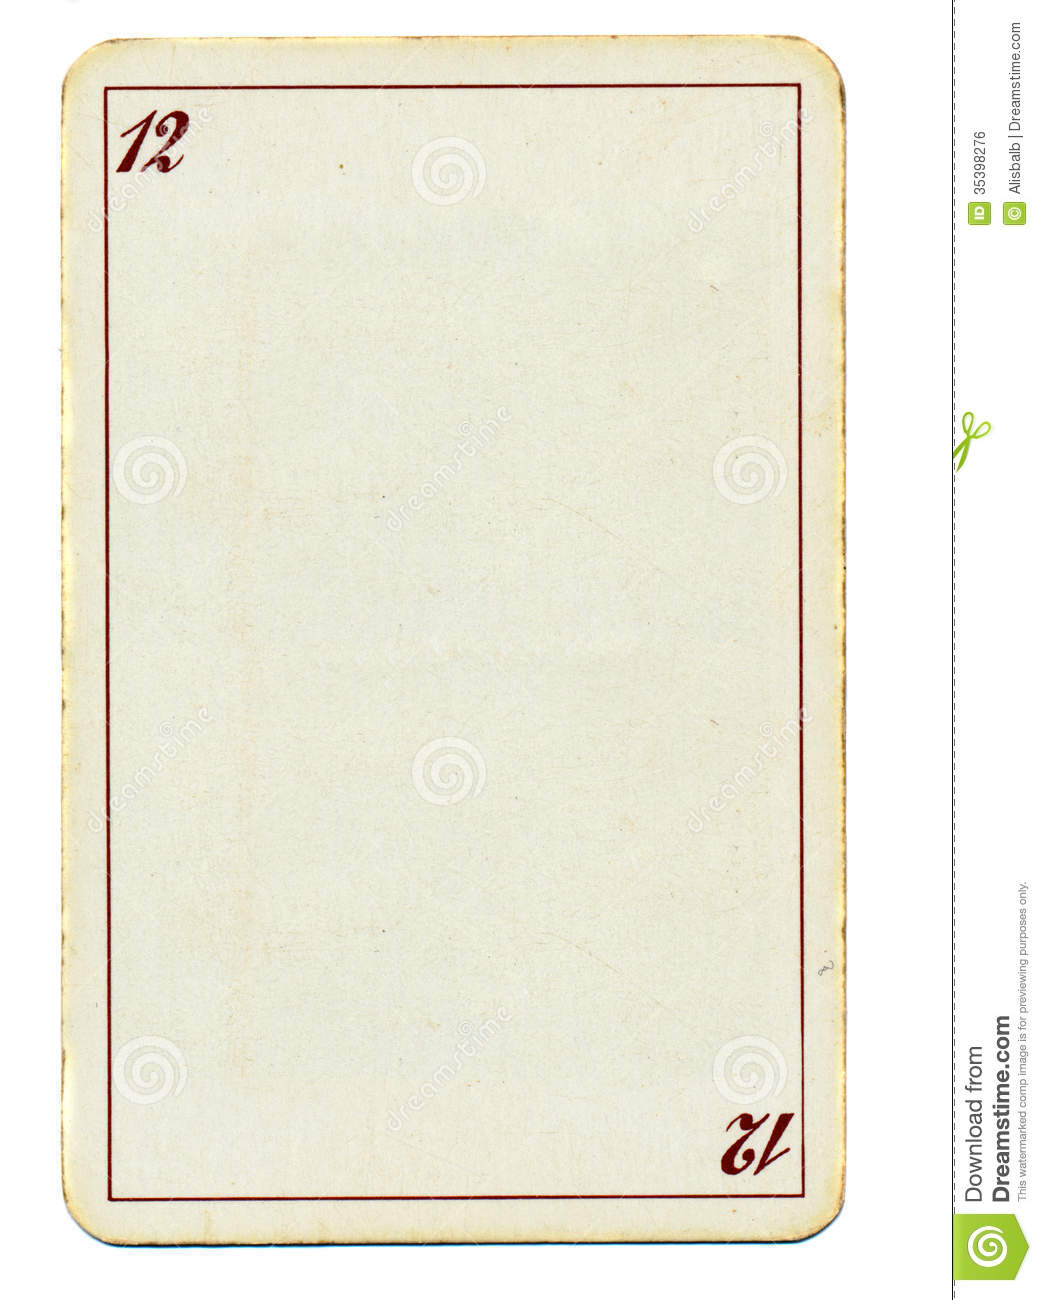 Empty Playing Card Paper Background With Number Twelve 12